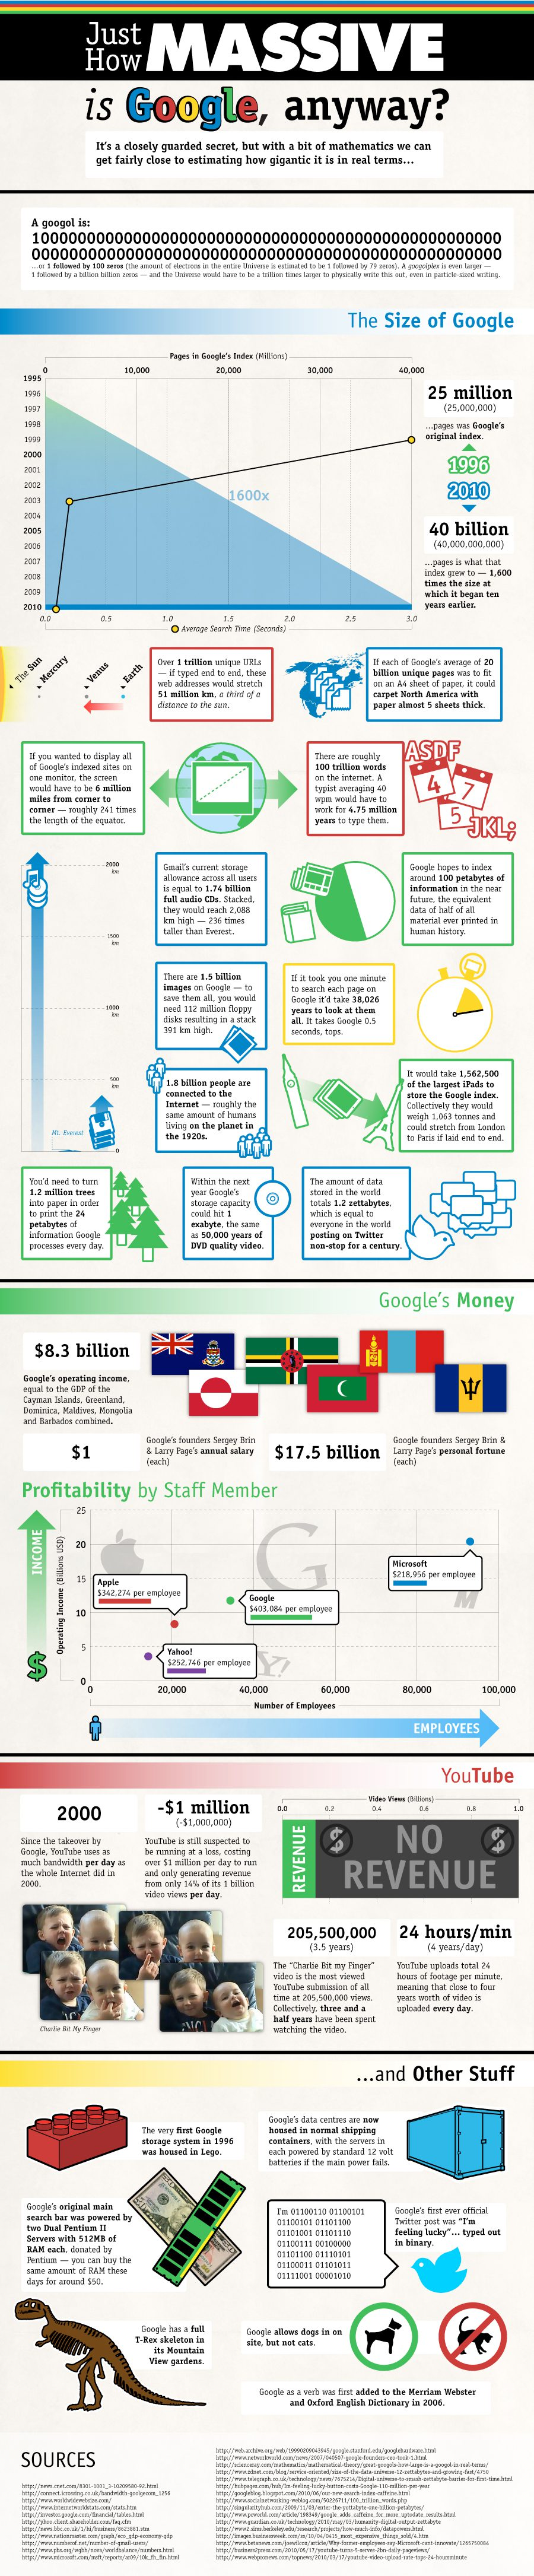 How Big Really Is Google